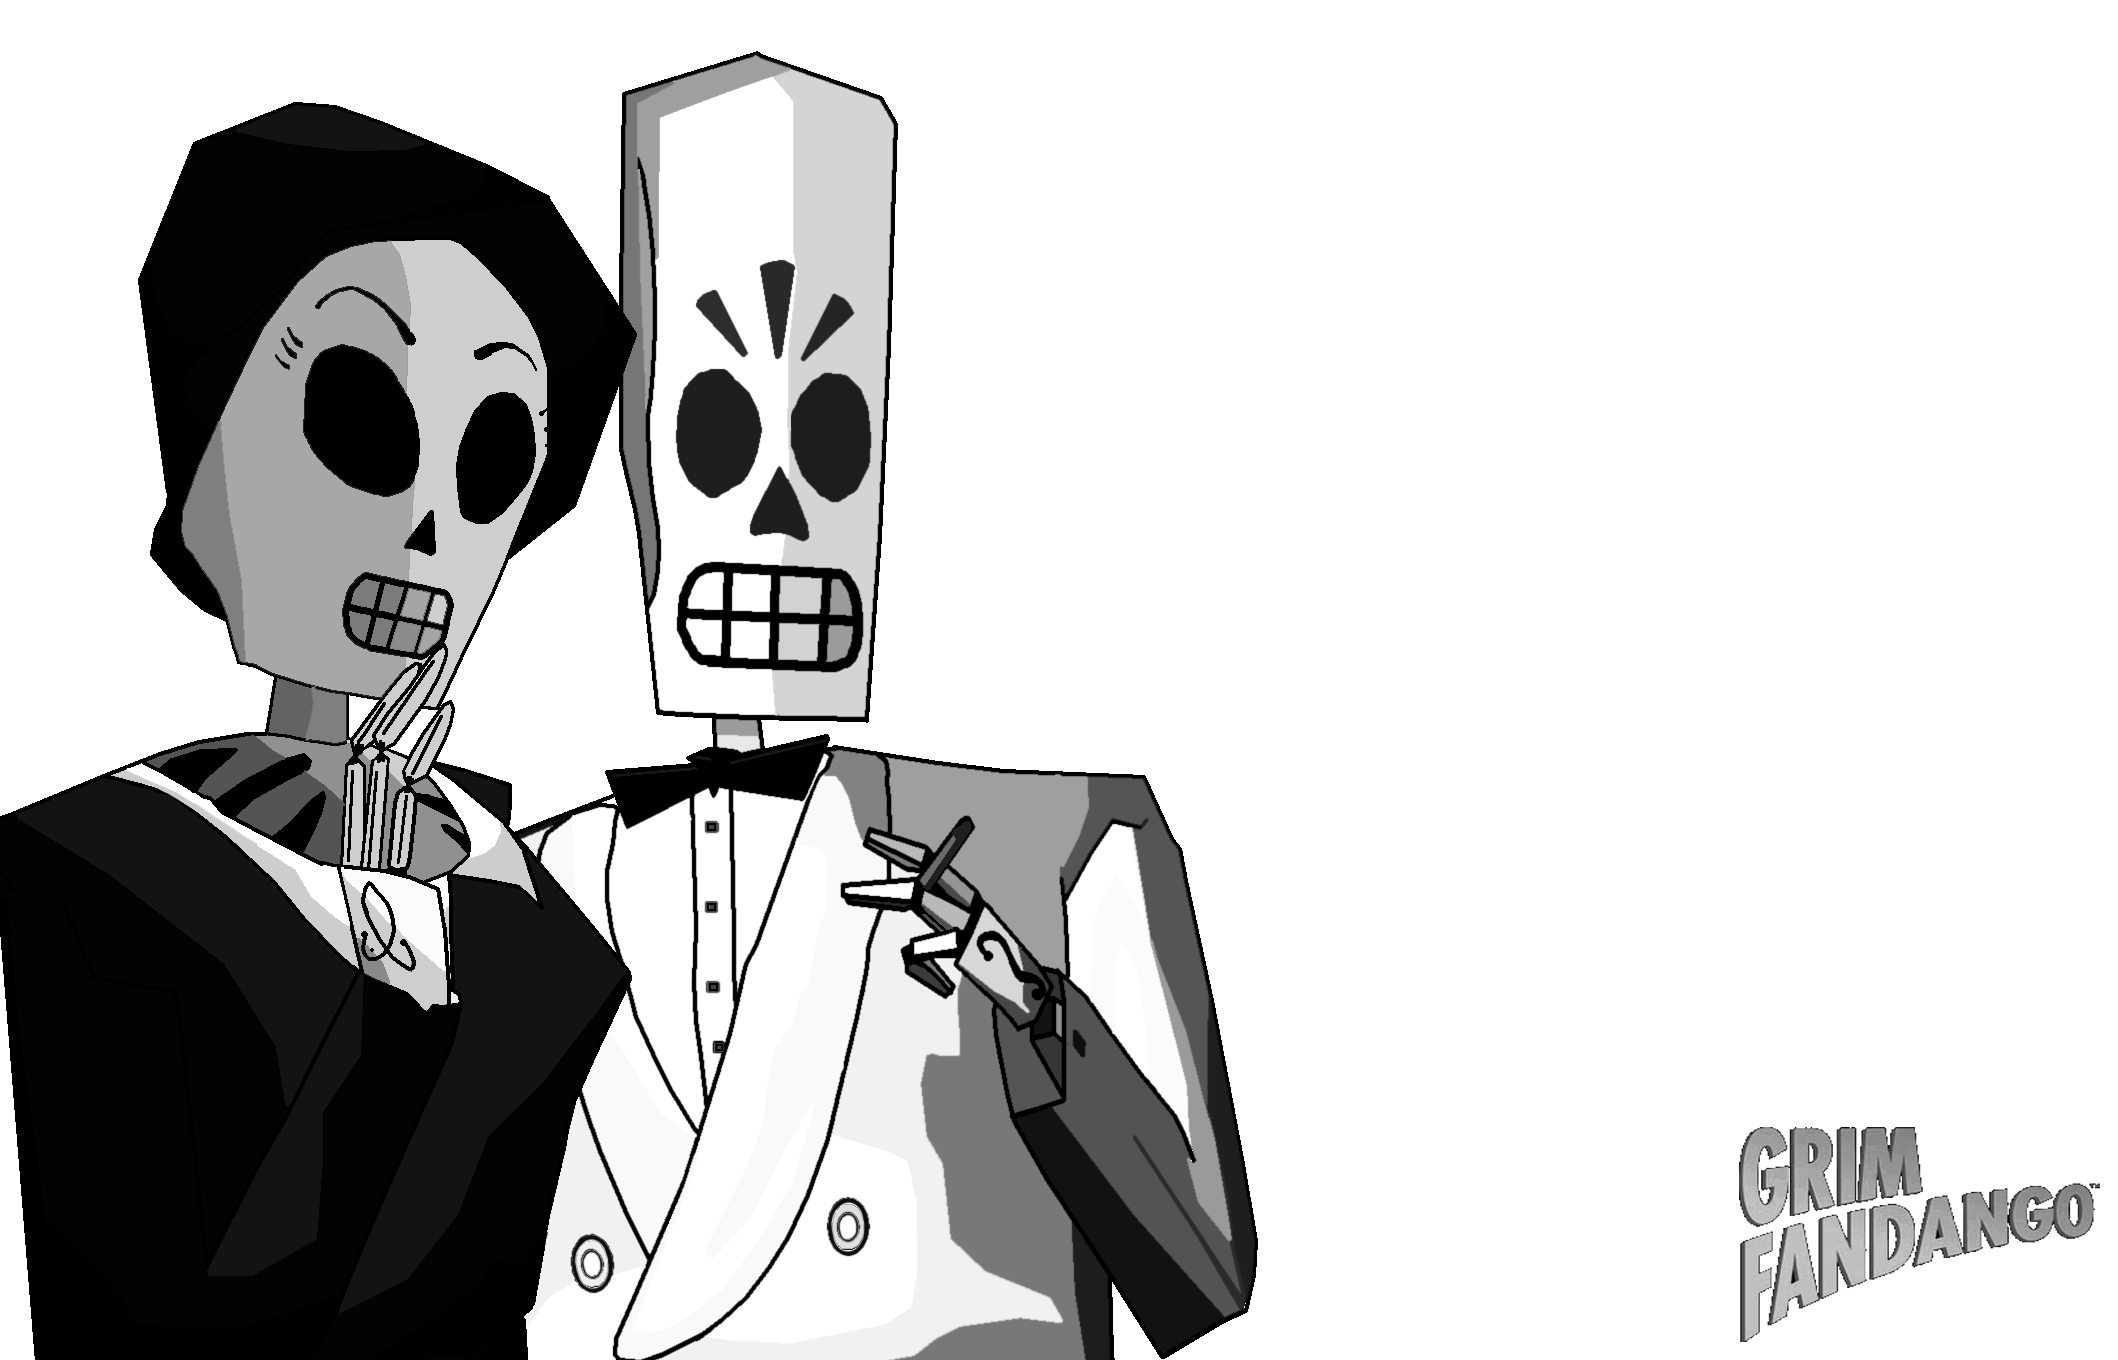 Grim Fandango Backgrounds, Compatible - PC, Mobile, Gadgets| 2118x1360 px